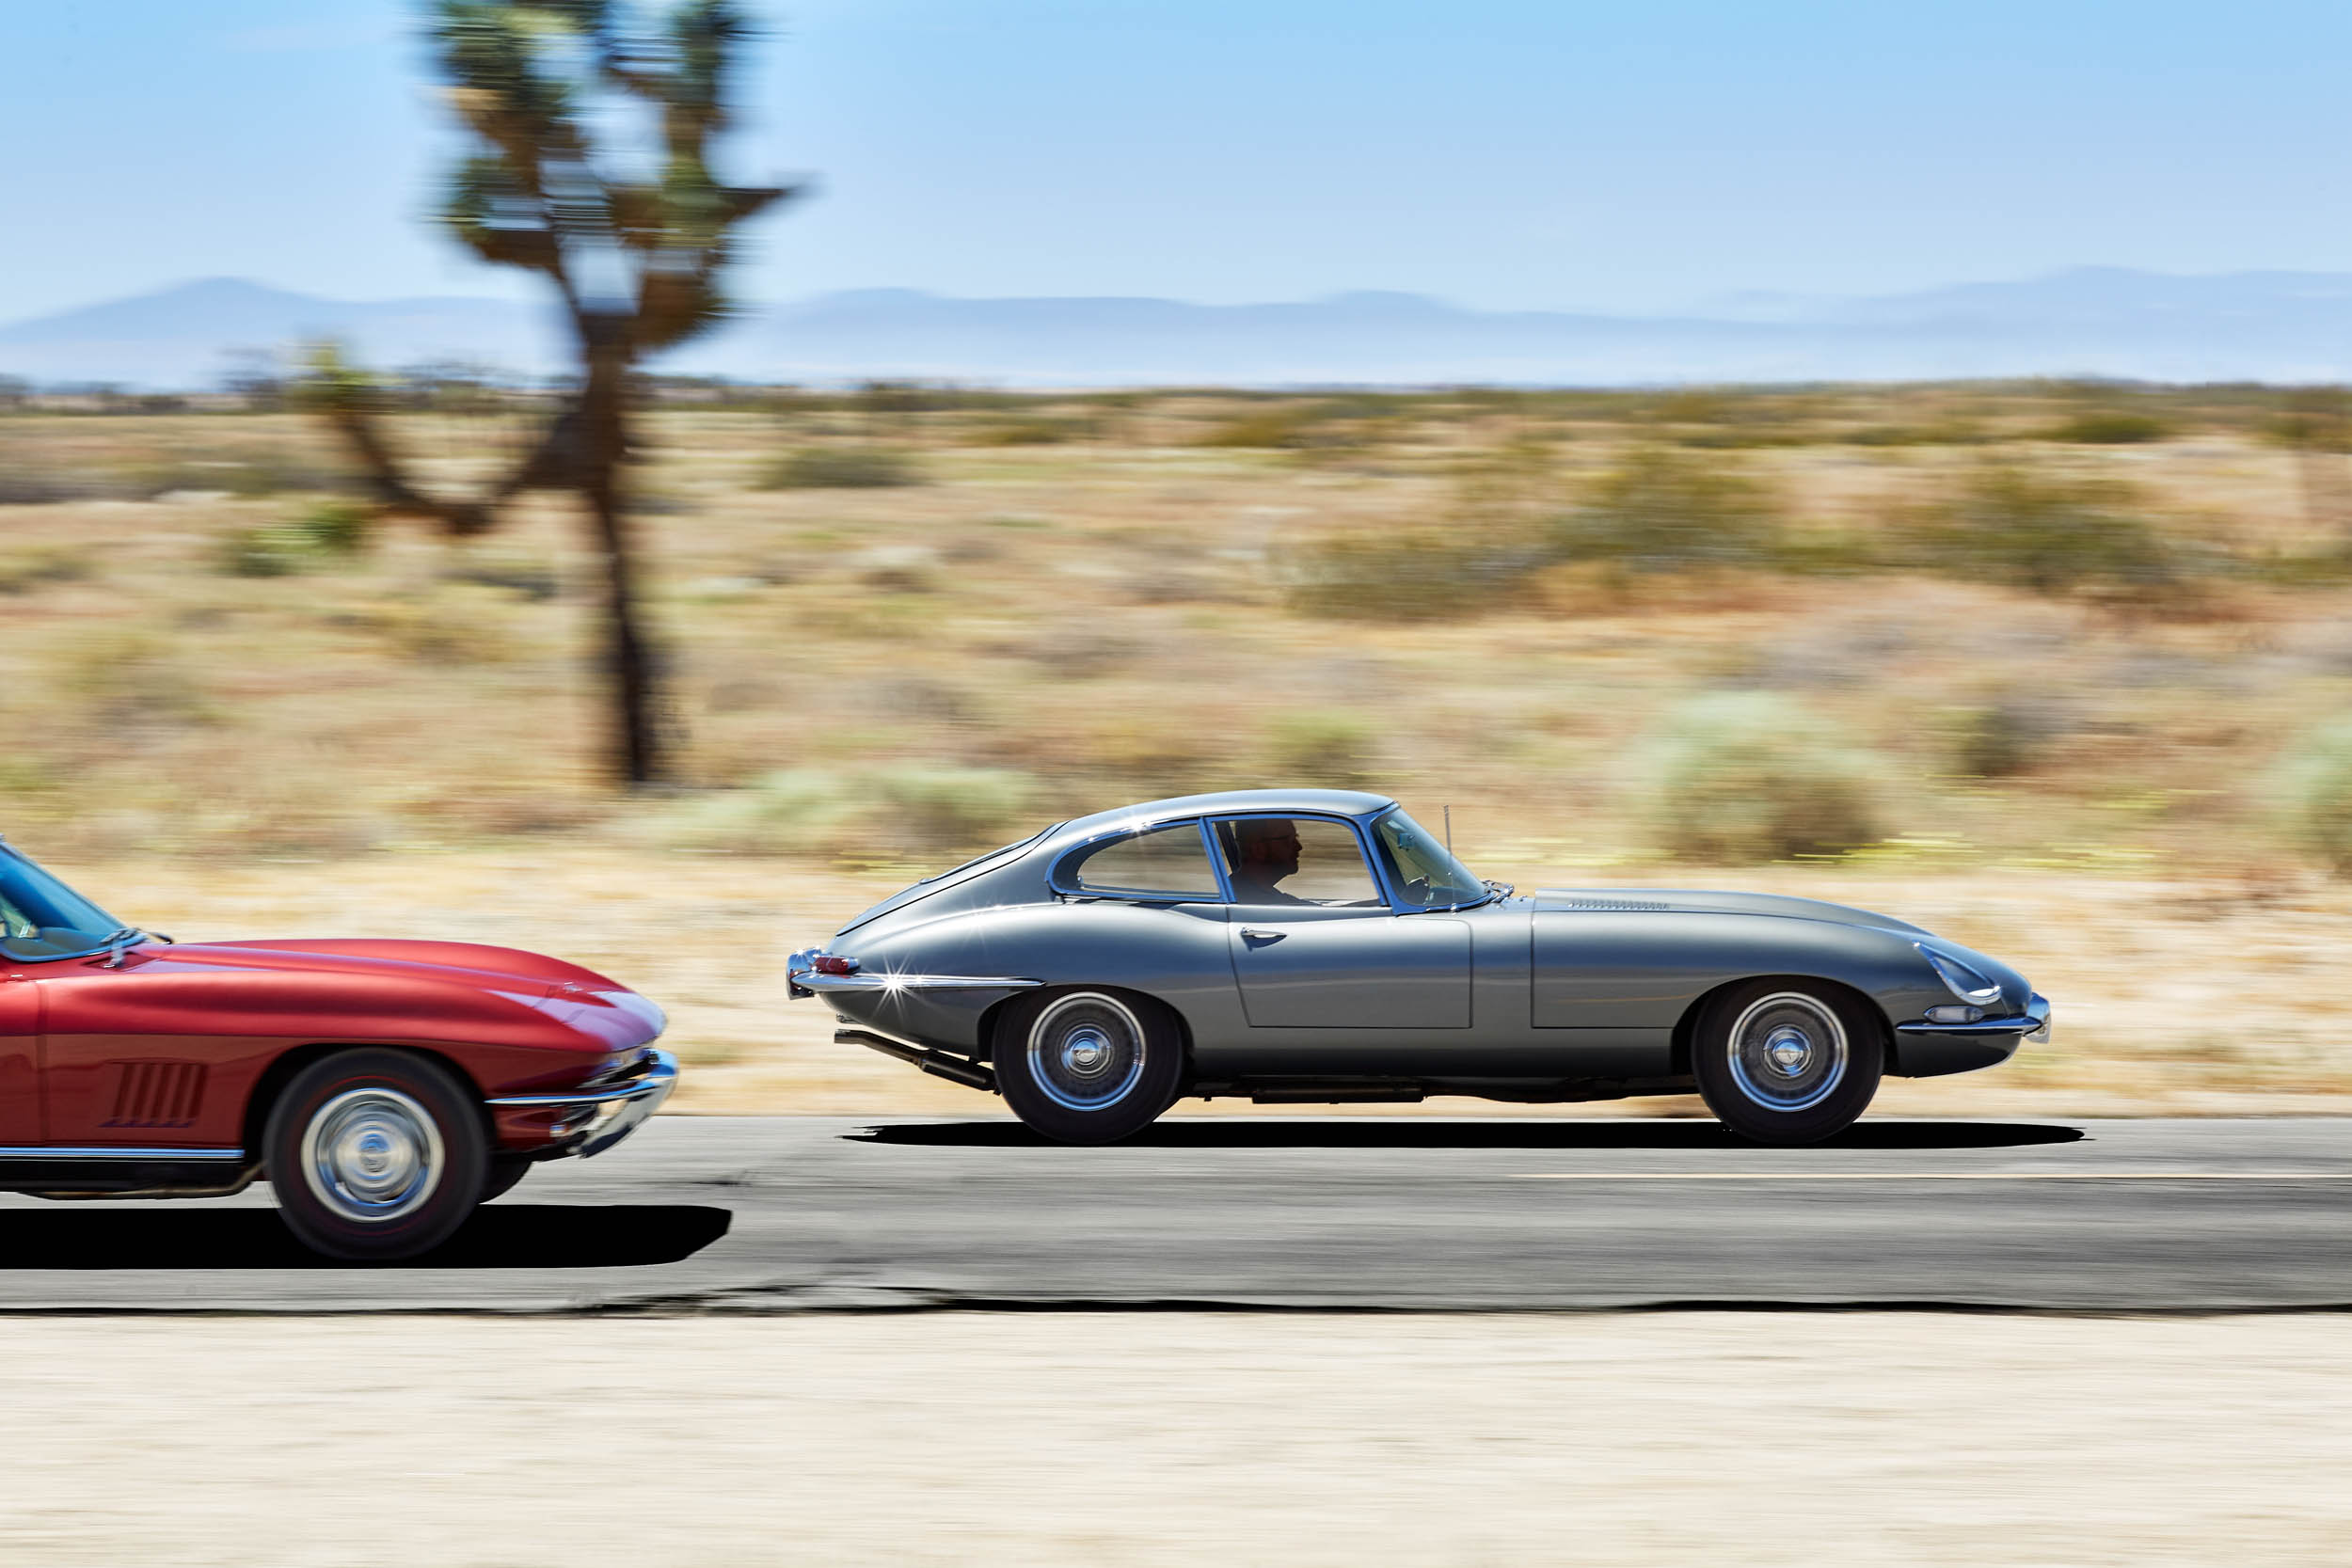 1967 Jaguar E-type and 1967 Chevrolet Corvette